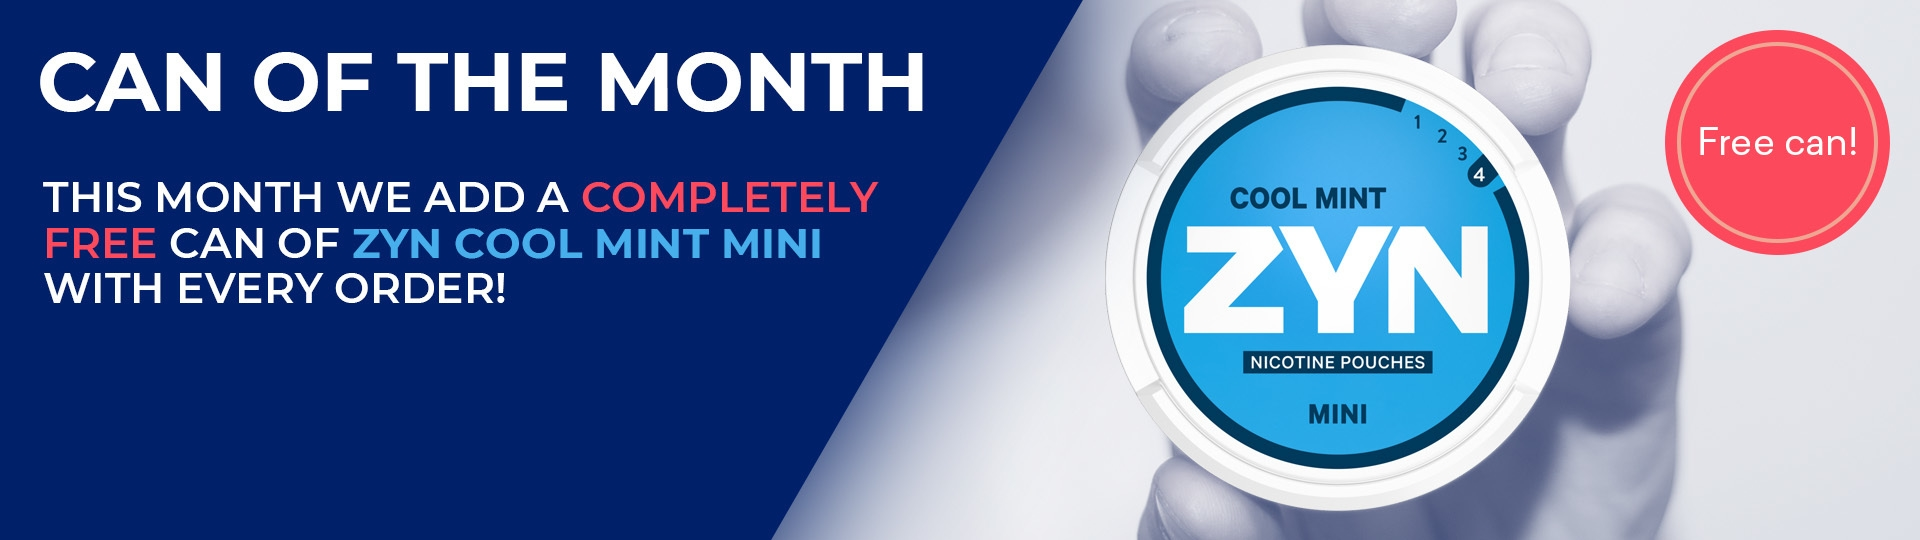 Can of the Month!